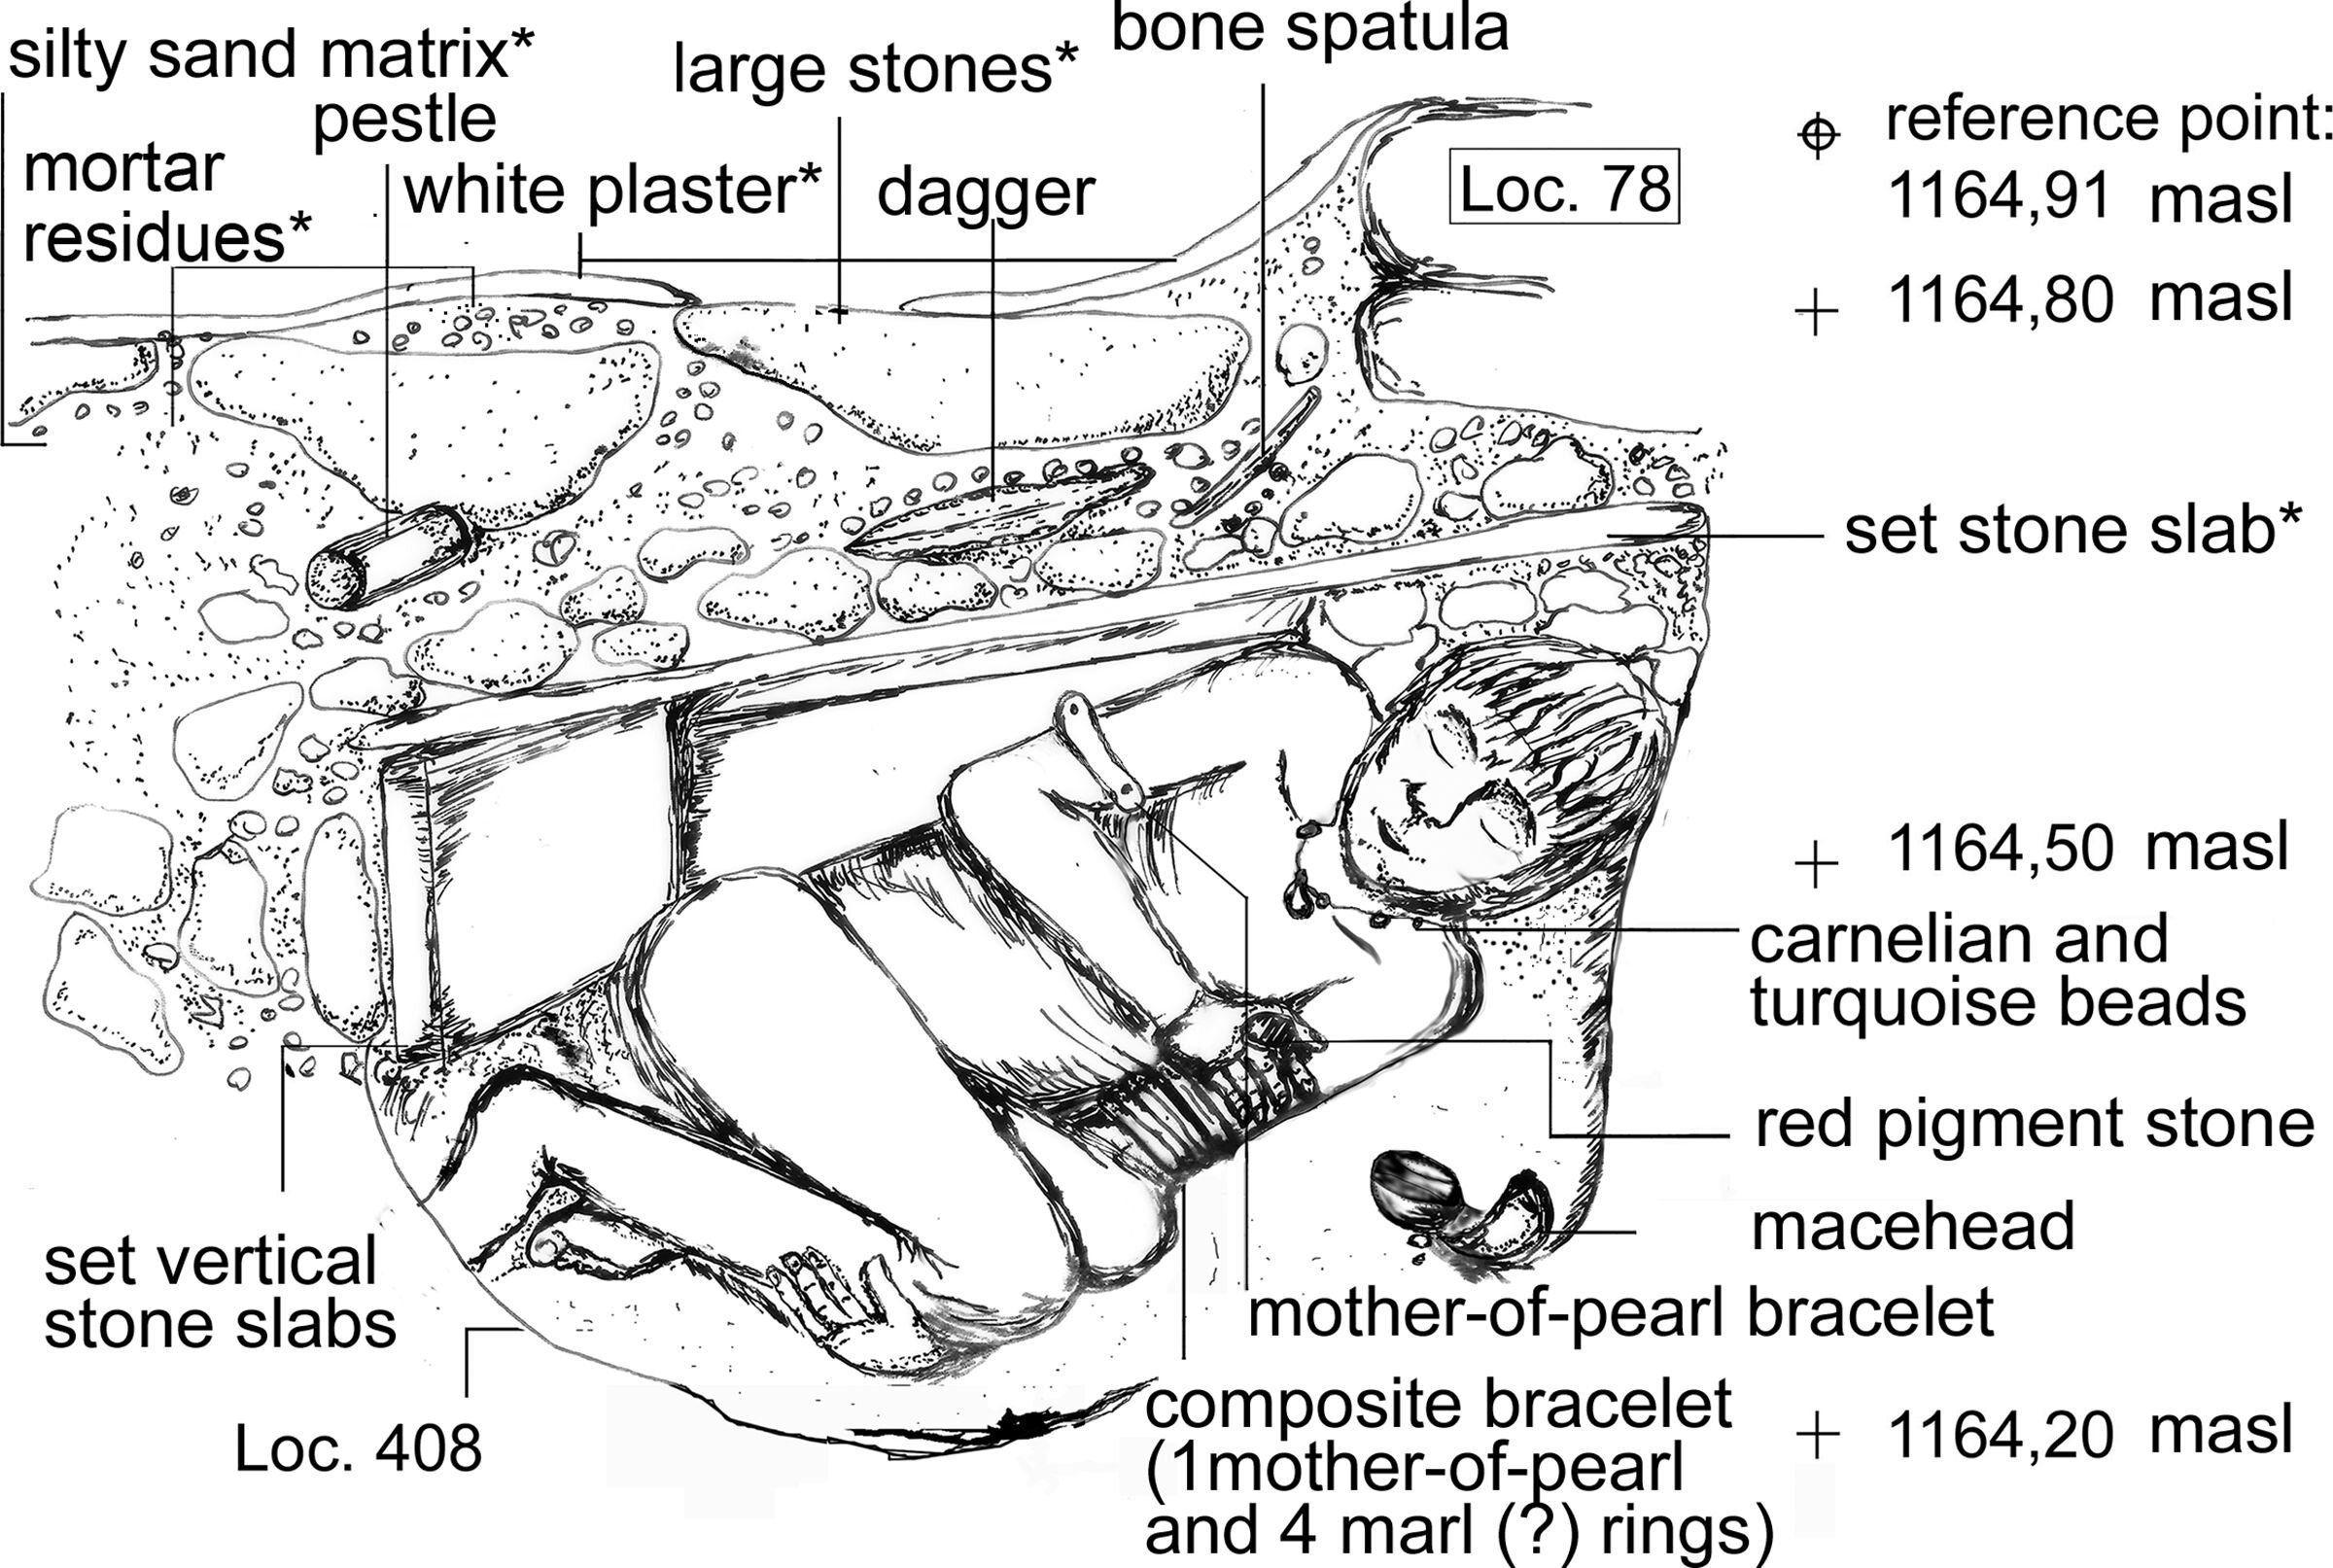 Clues to early social structures may be found in ancient extraordinary graves